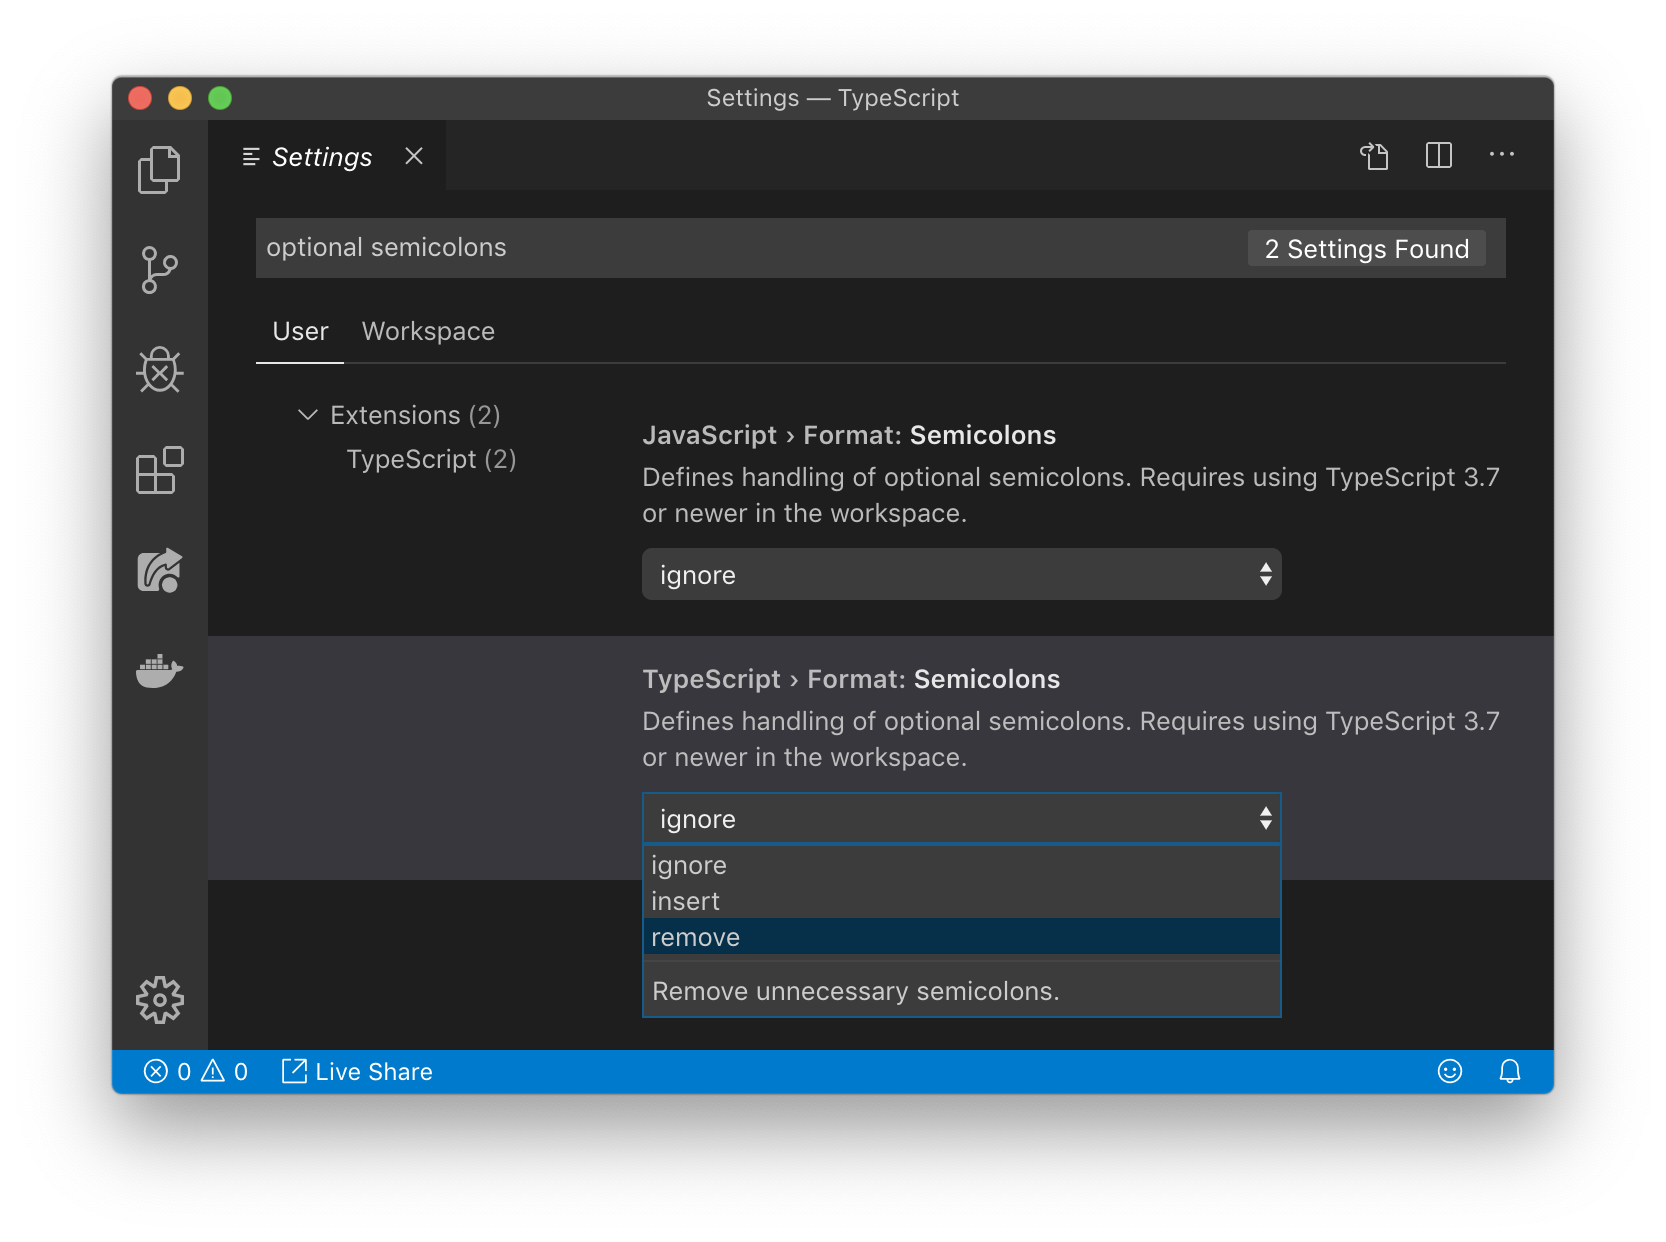 New semicolon formatter option in VS Code